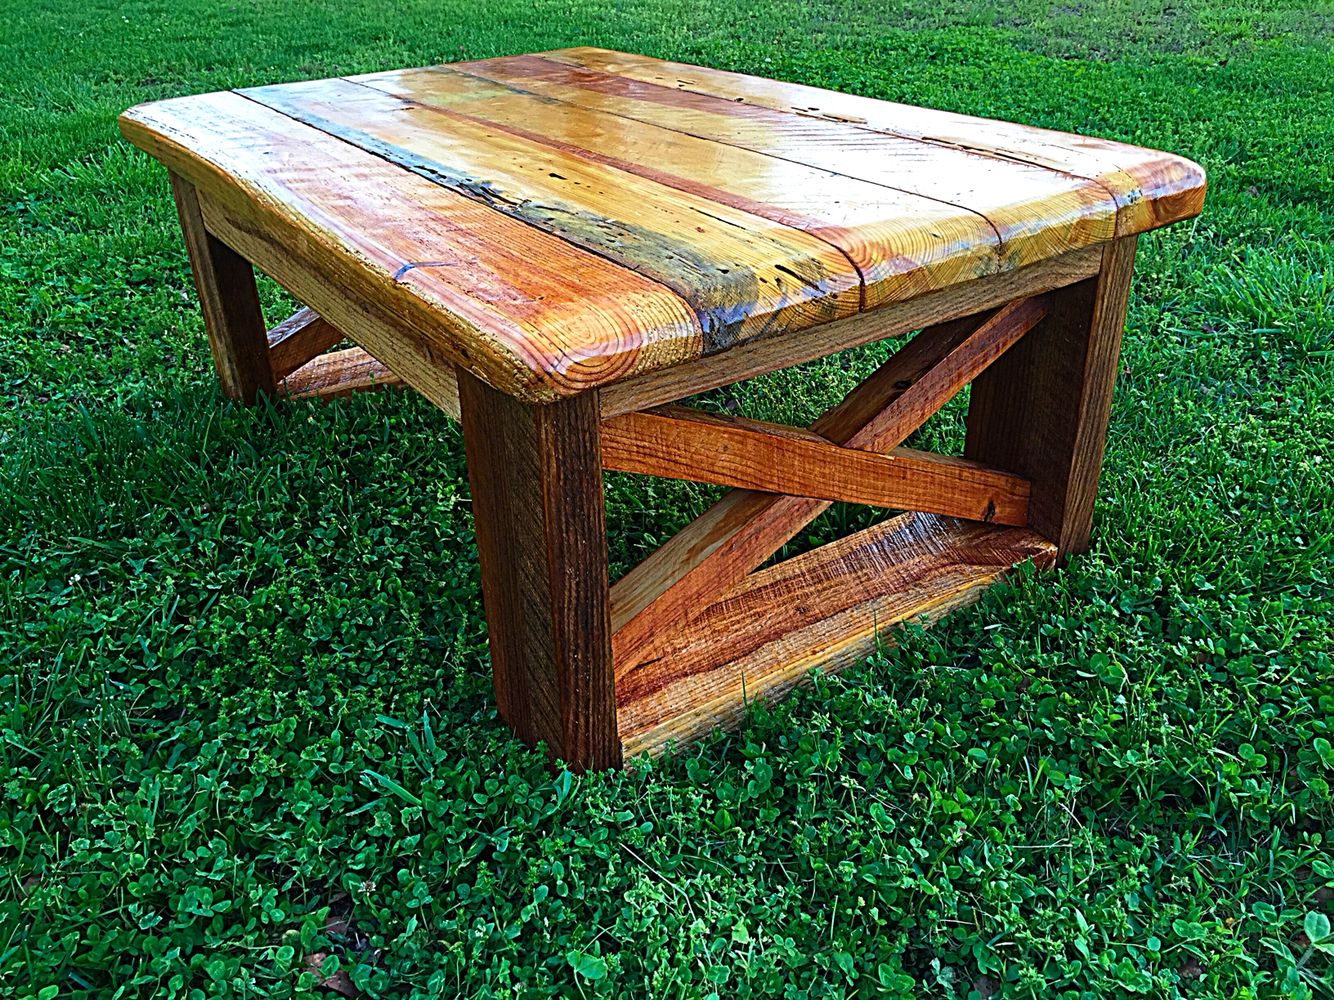 Rustic wormhole pine coffee table by Vintage Southern Creations